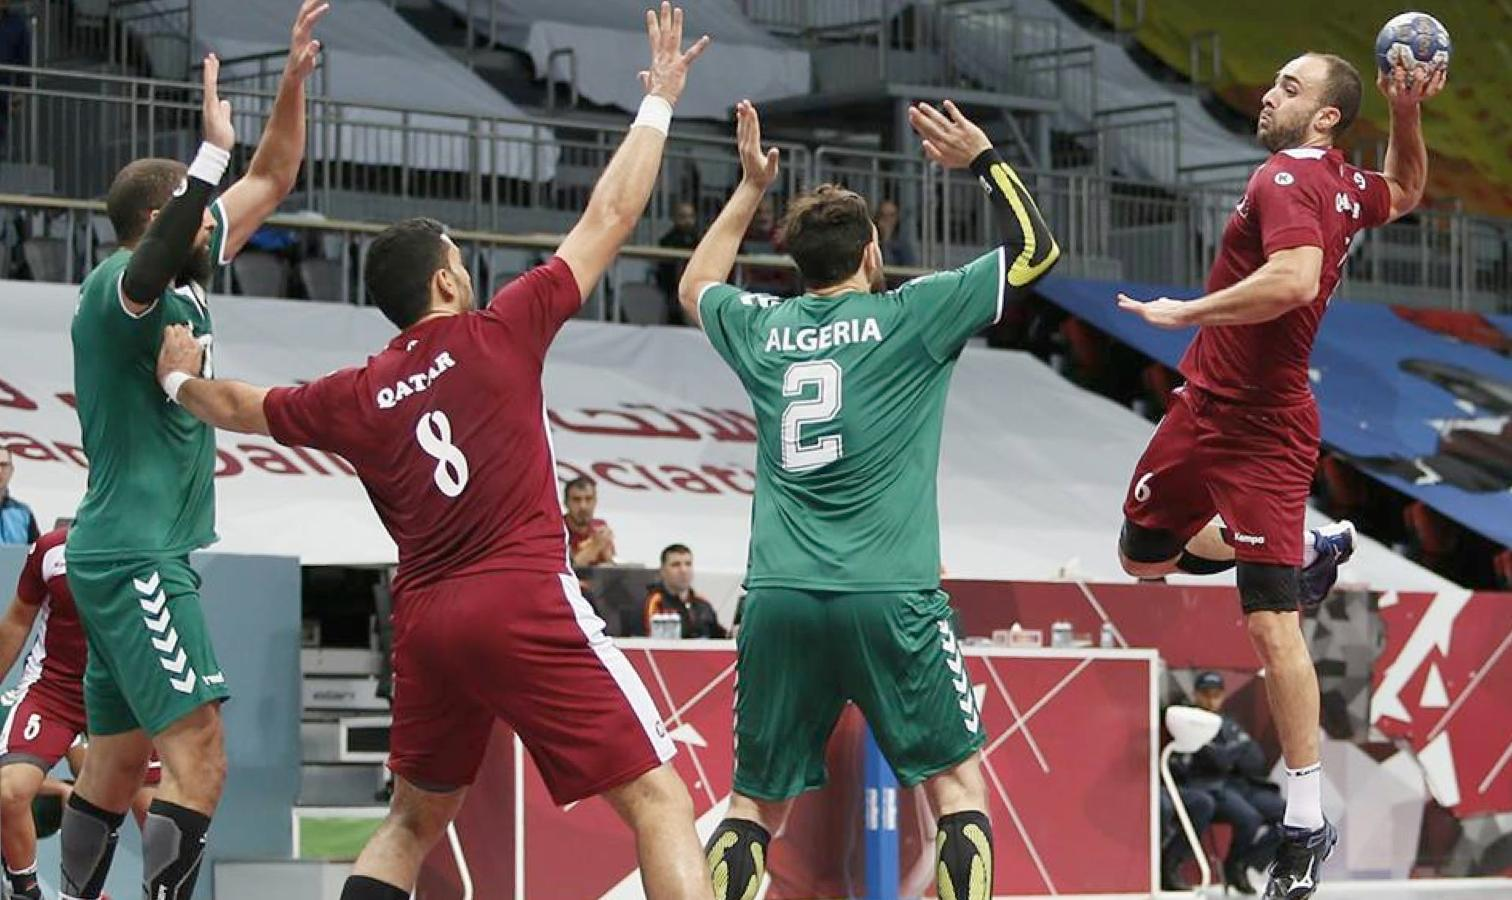 handball algerie qatar action